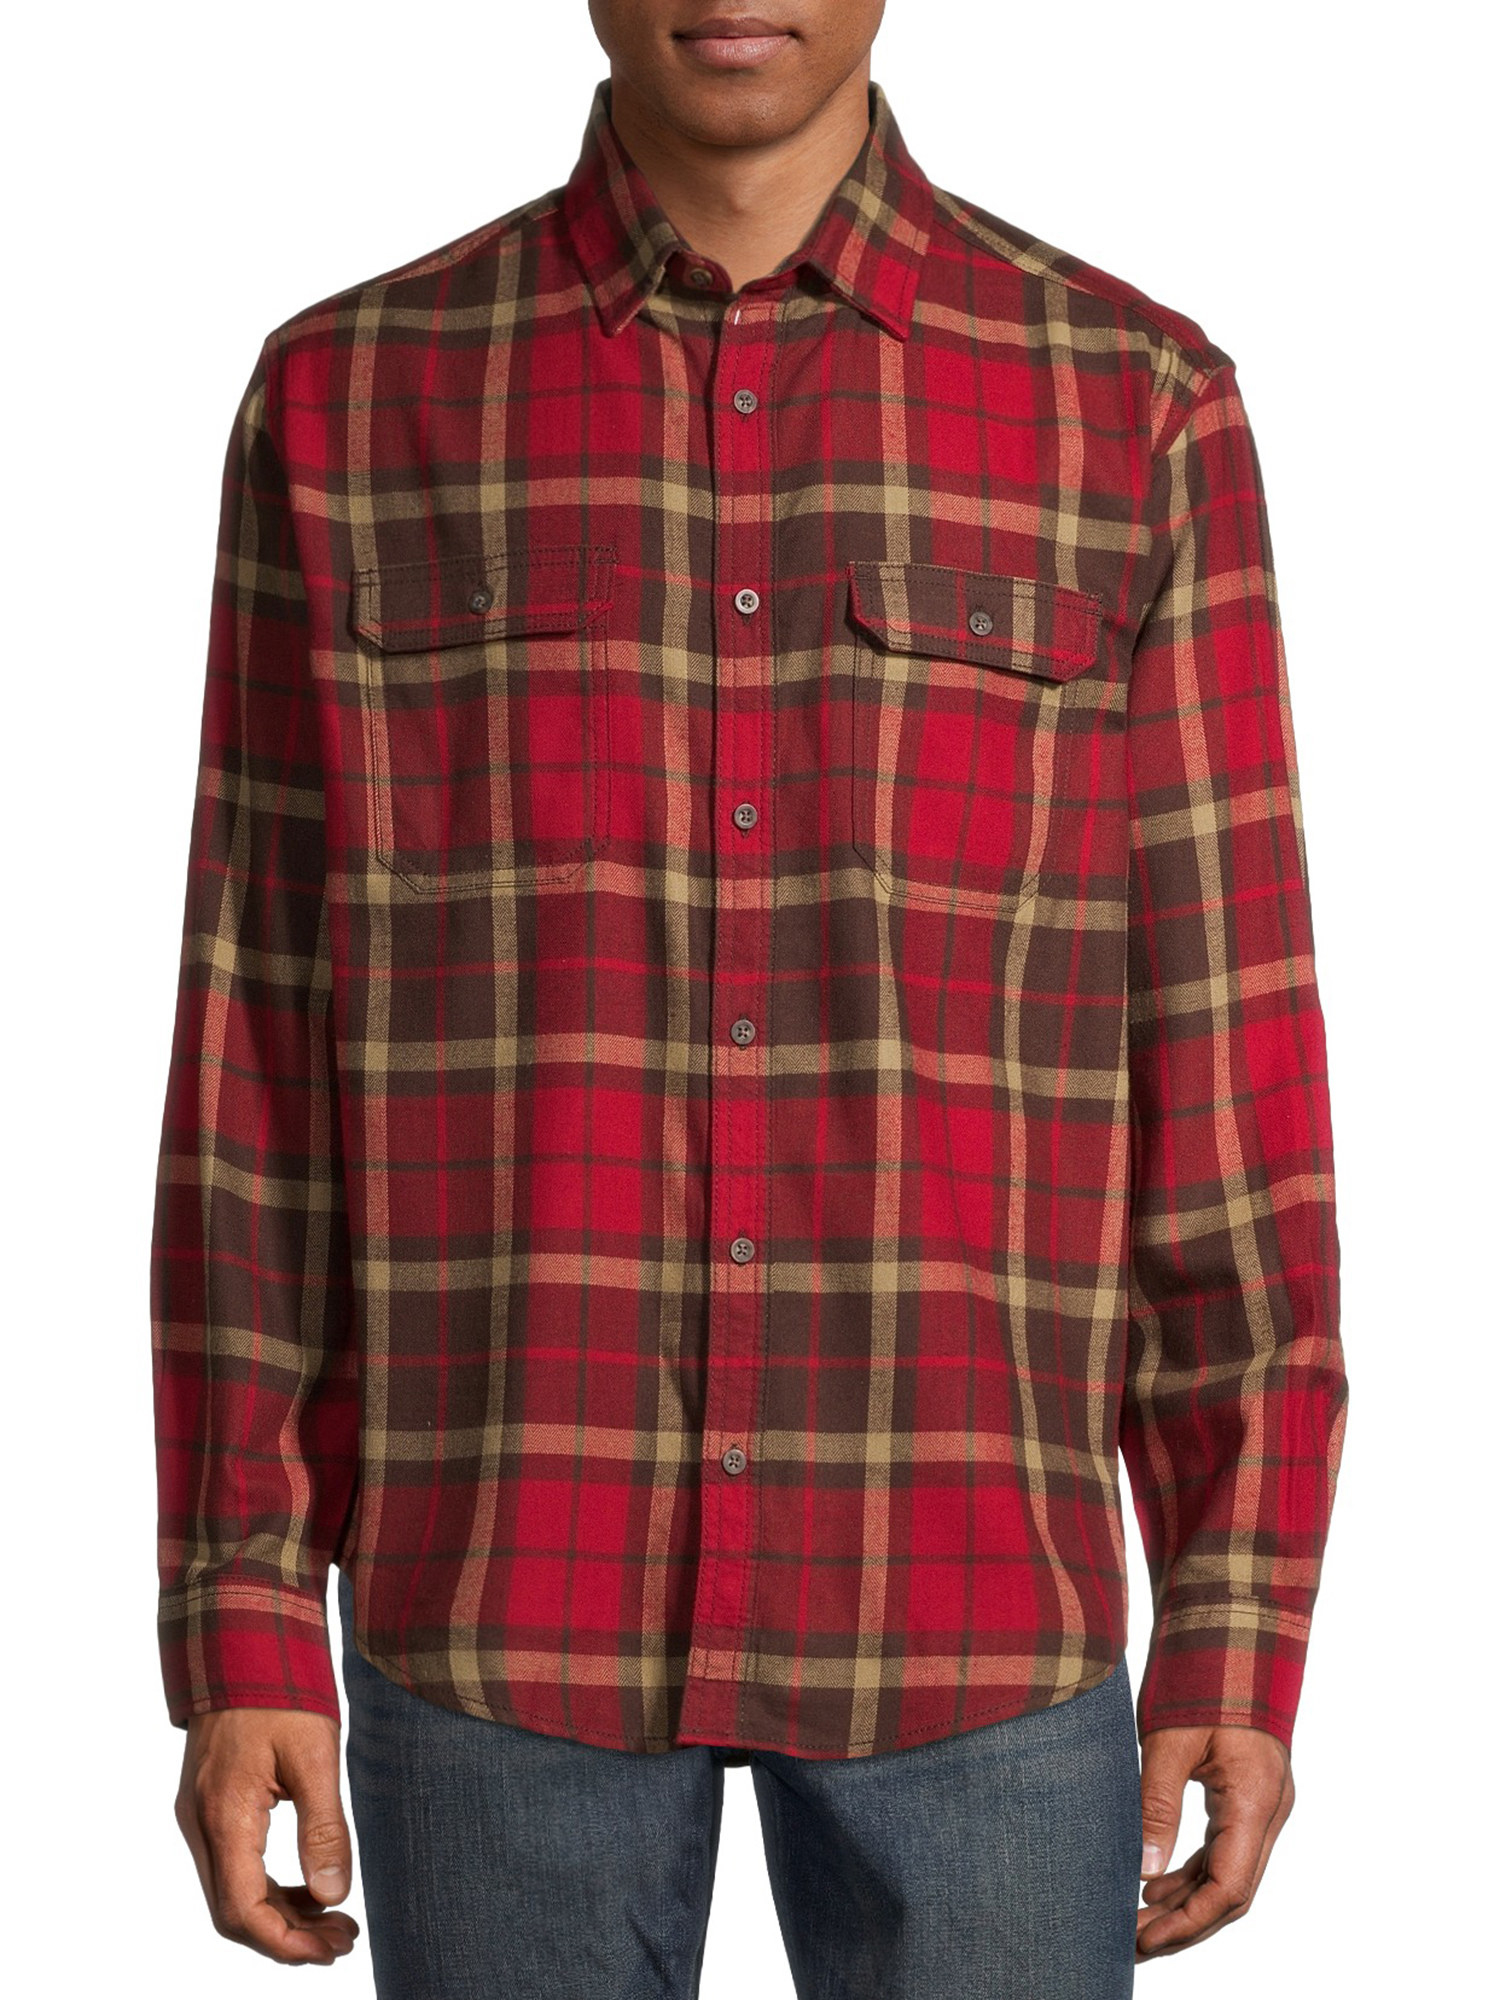 person in a red flannel shirt and jeans